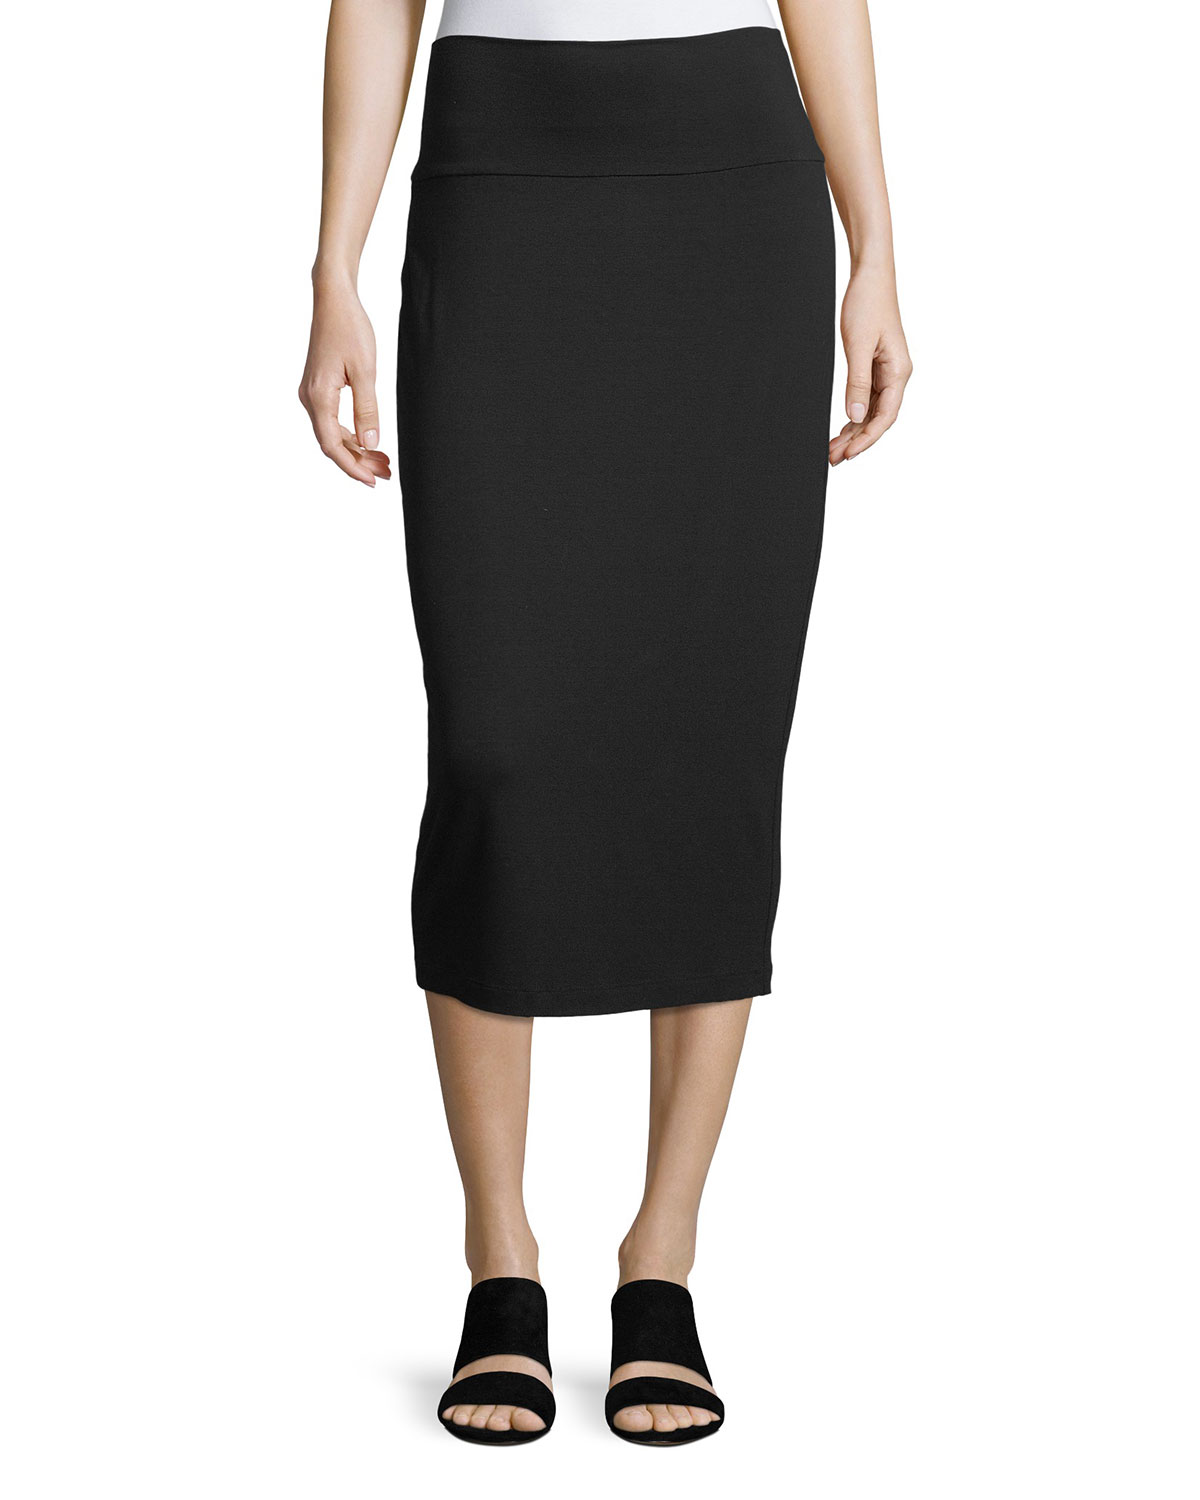 809fca534 Eileen Fisher Fold-Over Knee-Length Pencil Skirt | Neiman Marcus